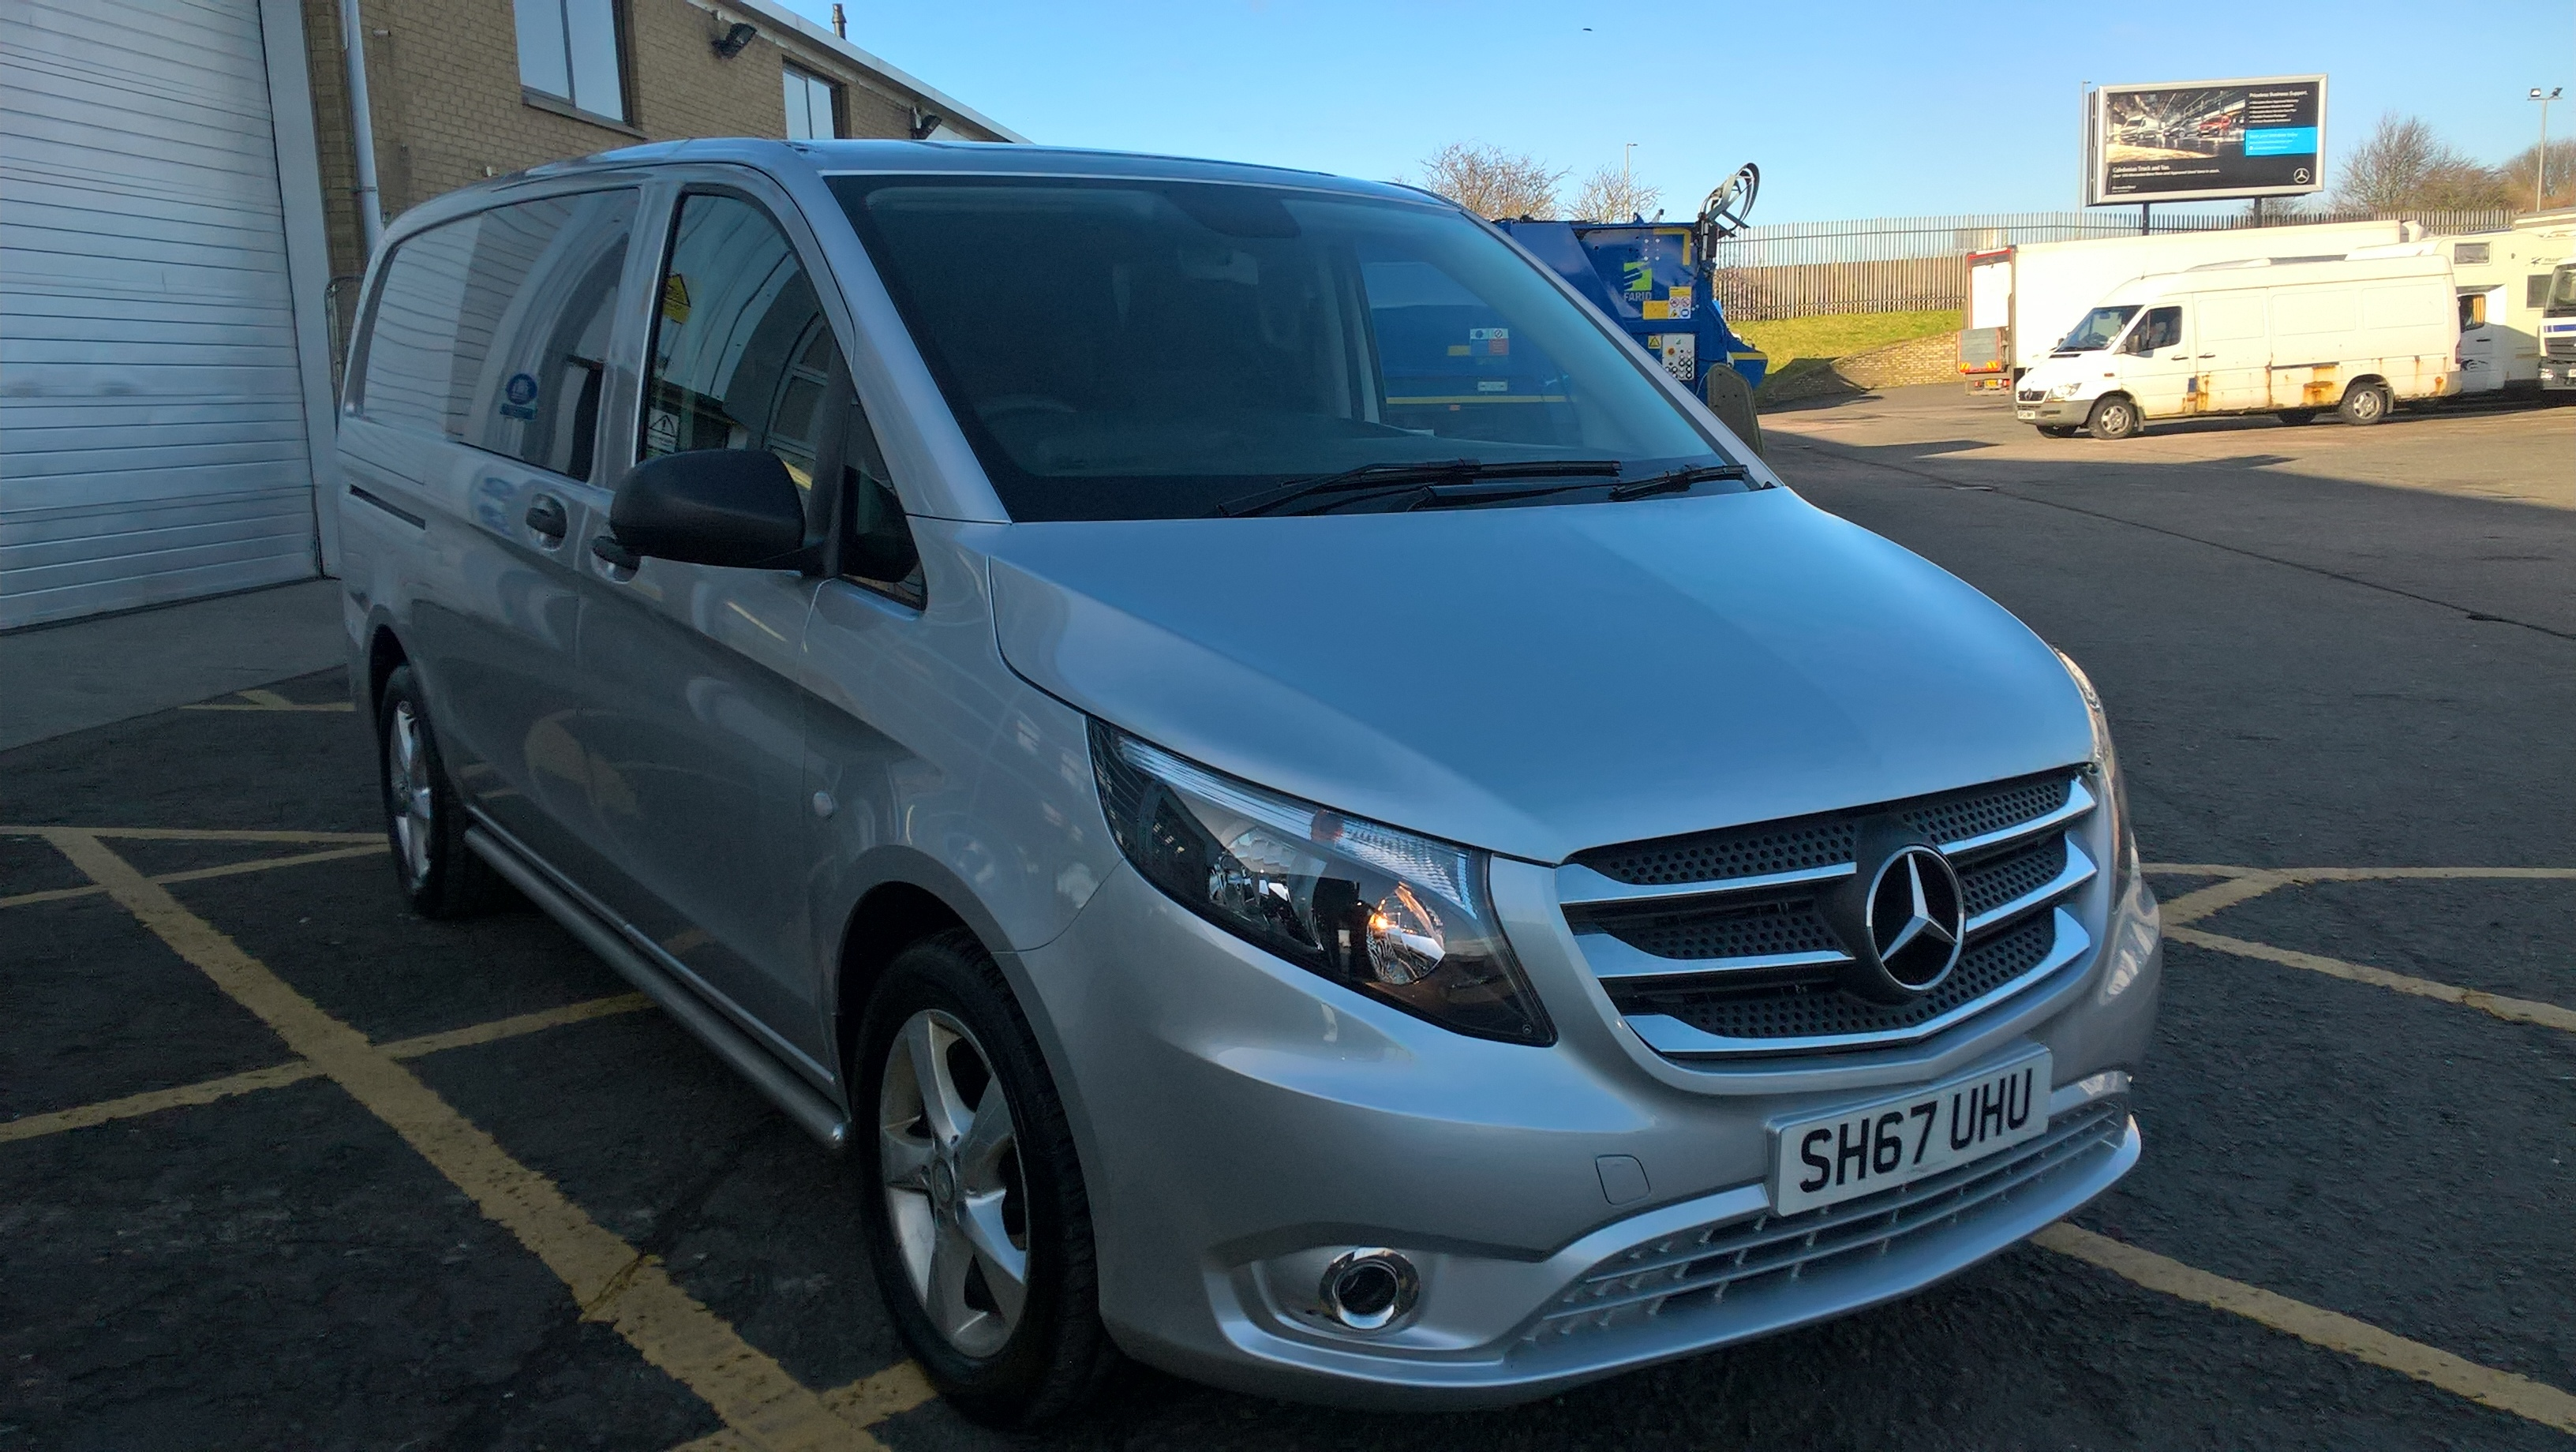 85e825d218 Used Van Search